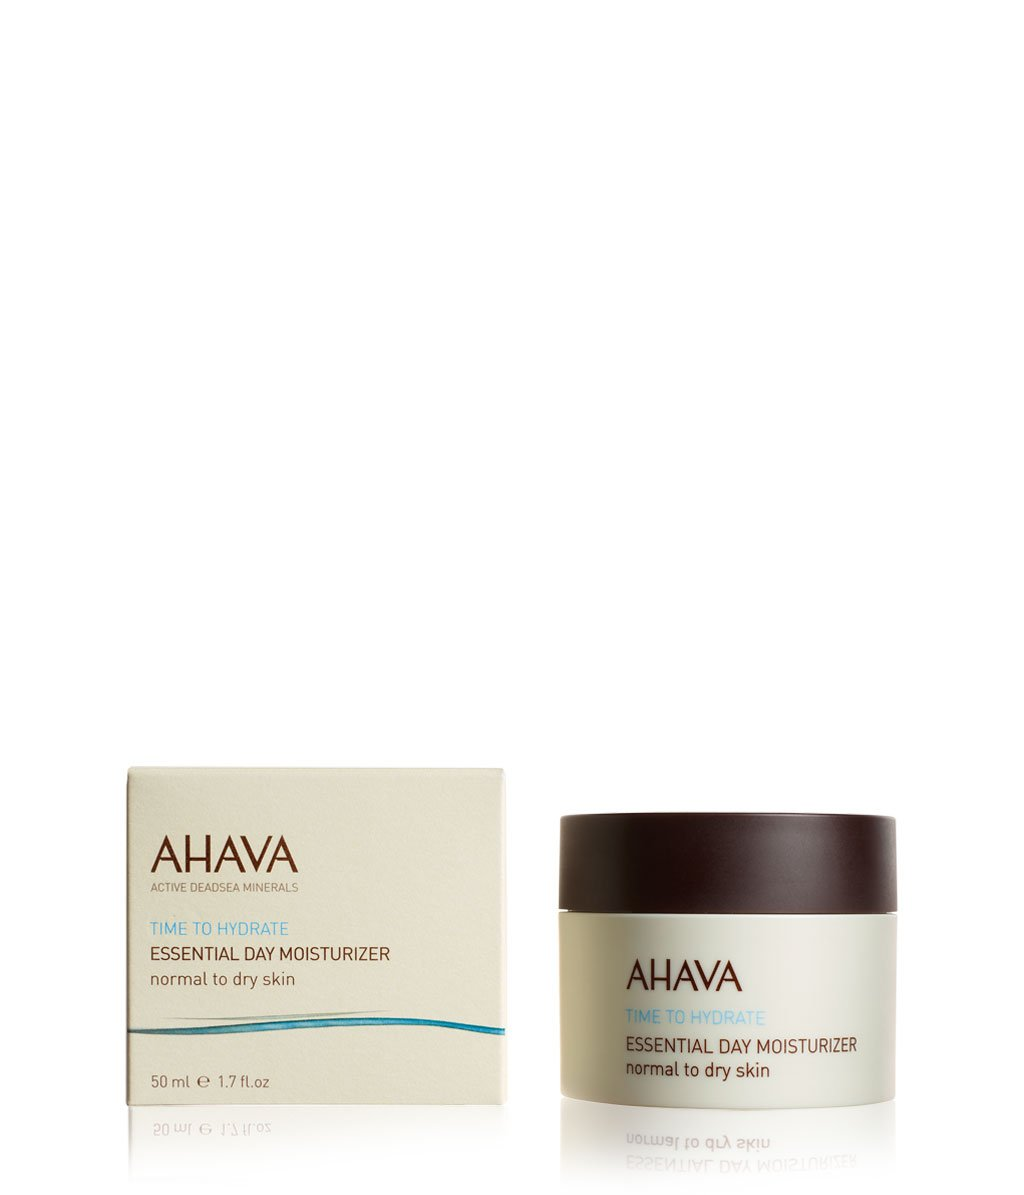 ahava time to hydrate essential day moisturizer normale. Black Bedroom Furniture Sets. Home Design Ideas